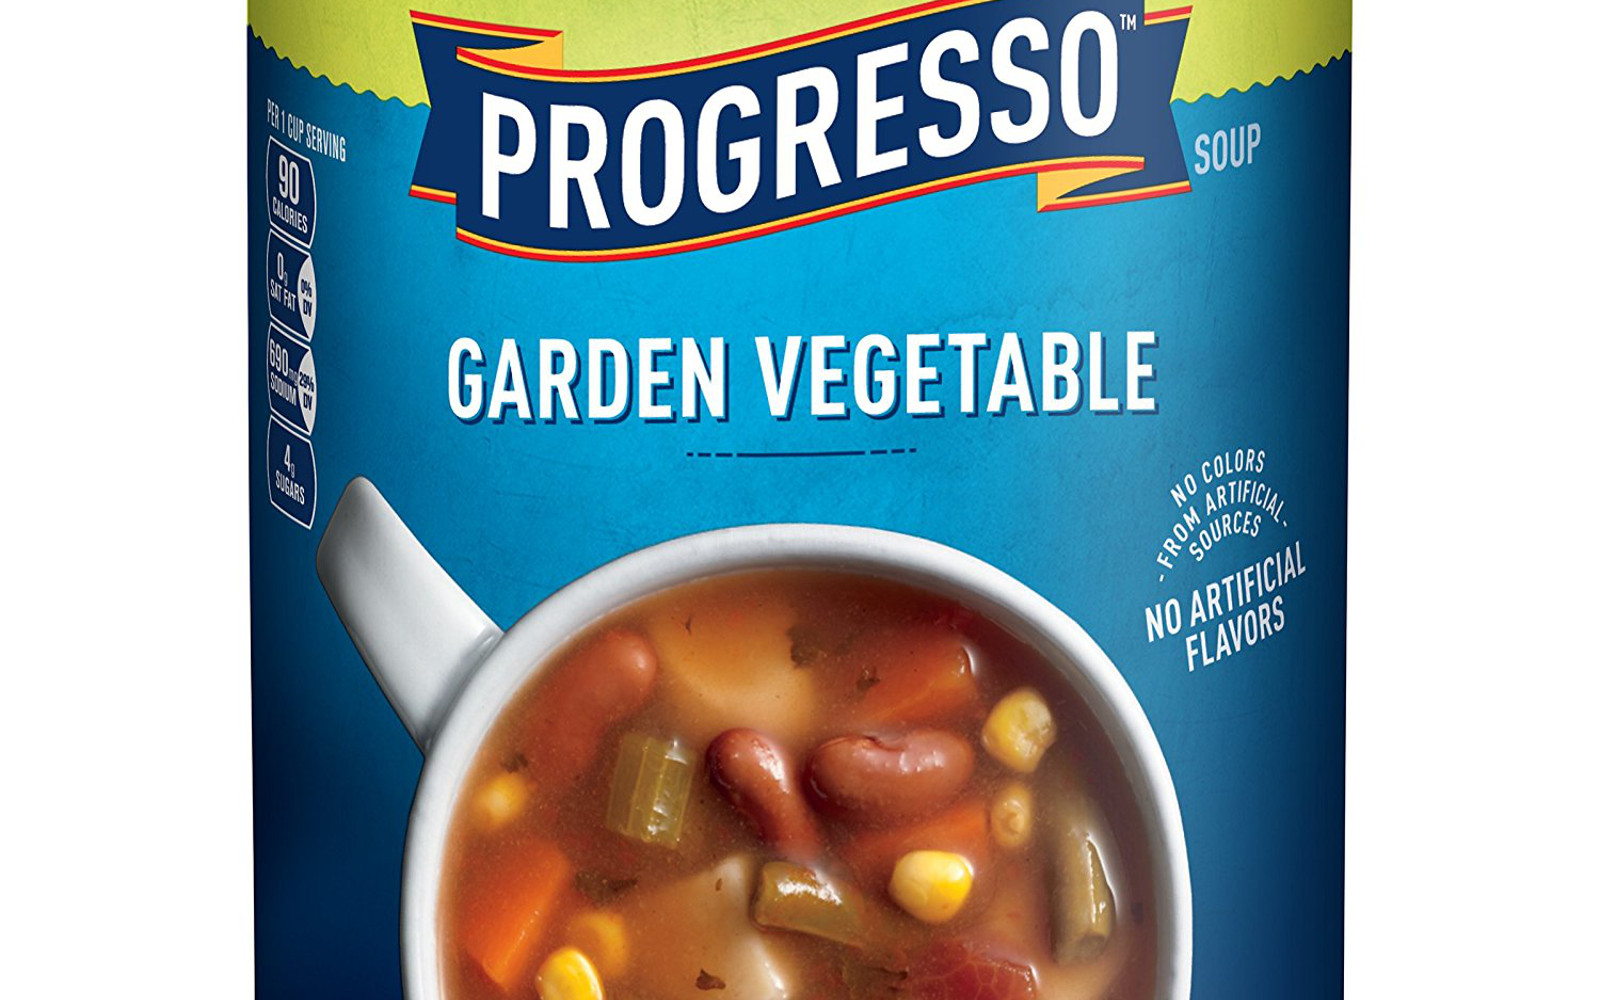 Healthy Amazon Soup Finds for the Vegan College Student | Vegan Progresso Soup, Vegetable Classics, Garden Vegetable Soup, Gluten Free, 18.5 oz Can